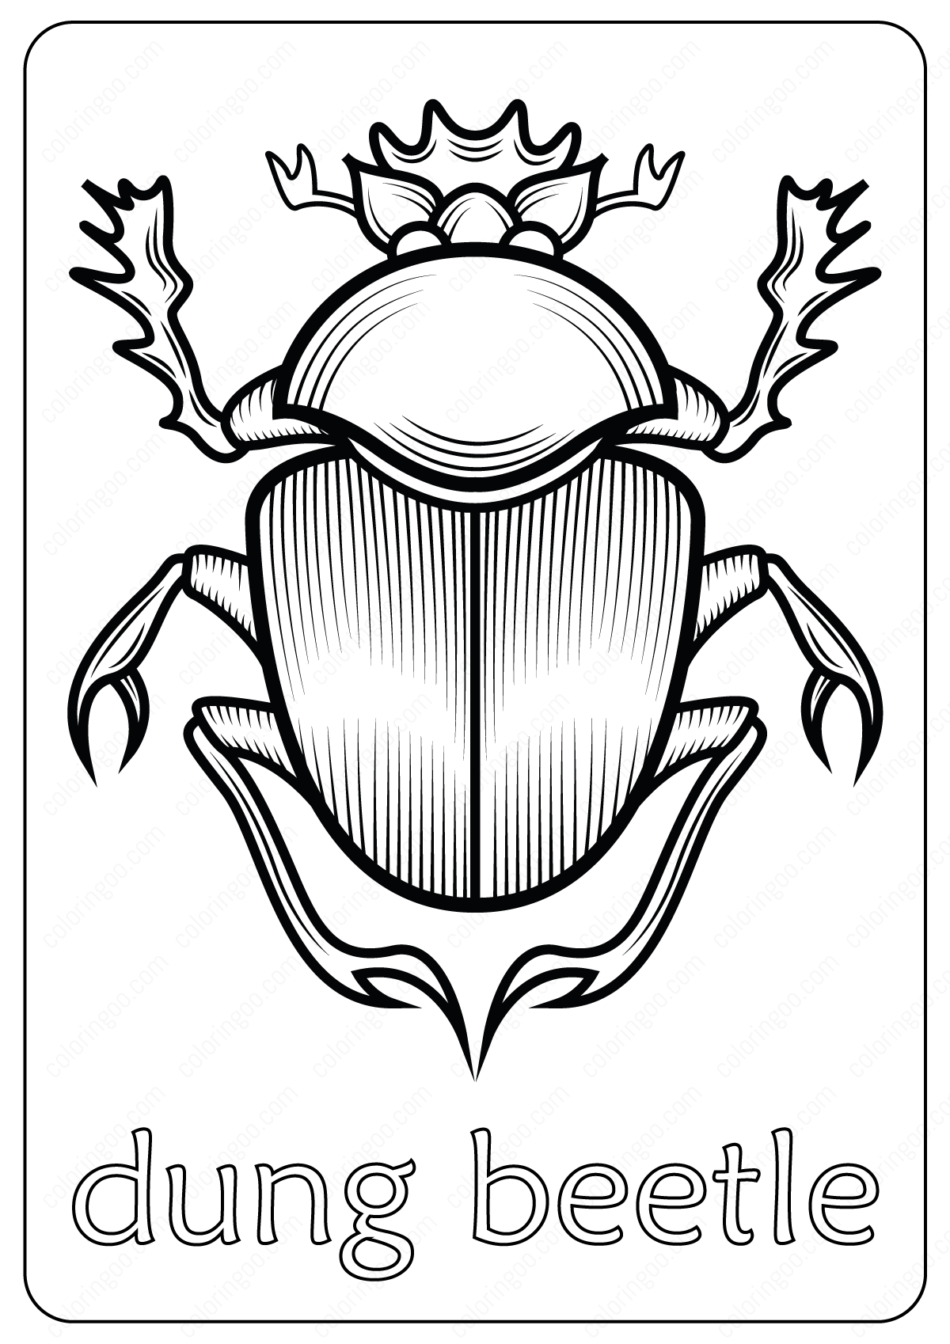 Animals dung beetle Coloring Pages Book